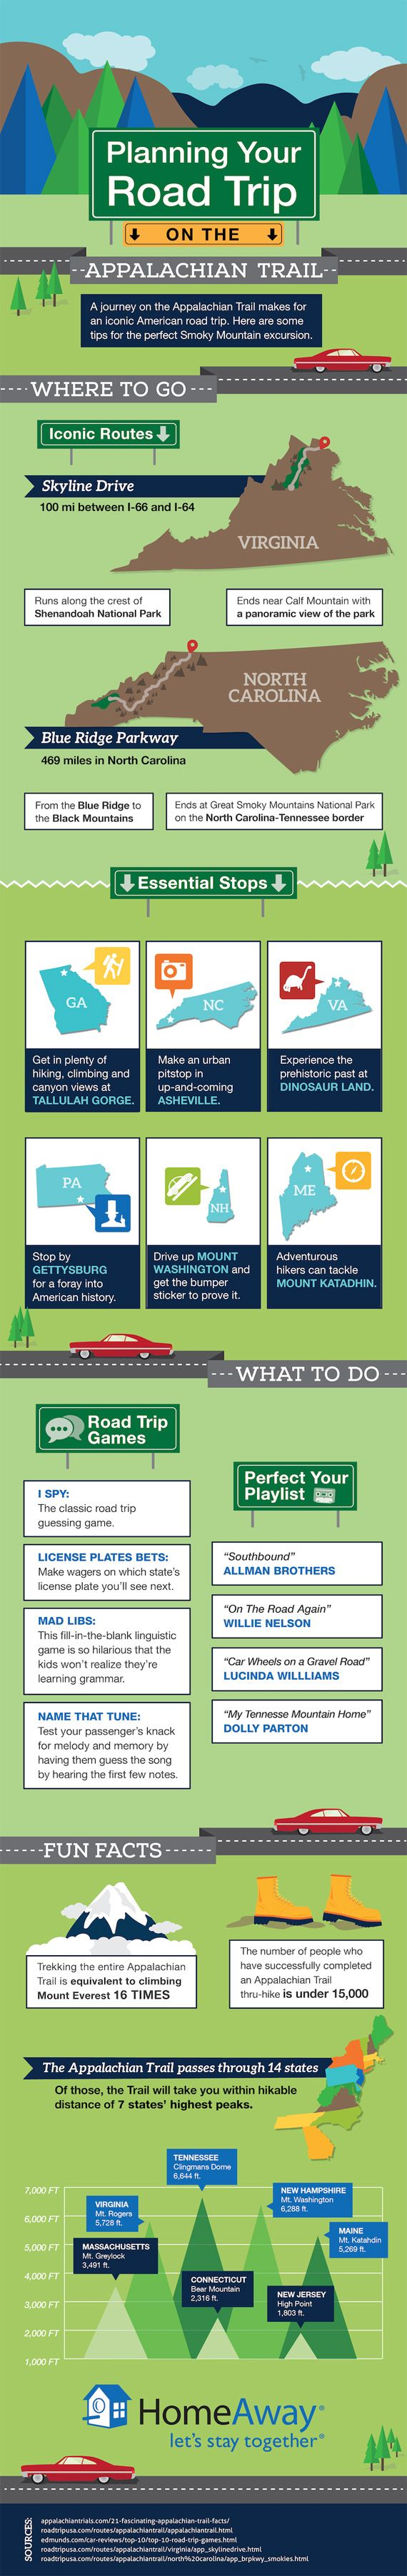 This road trip will deepen your knowledge of American history and geography. The Appalachian Trail passes through 14 states, but the best driving routes are the Skyline Drive in Virginia and the Blue Ridge Parkway in North Carolina. Let's get goin'!